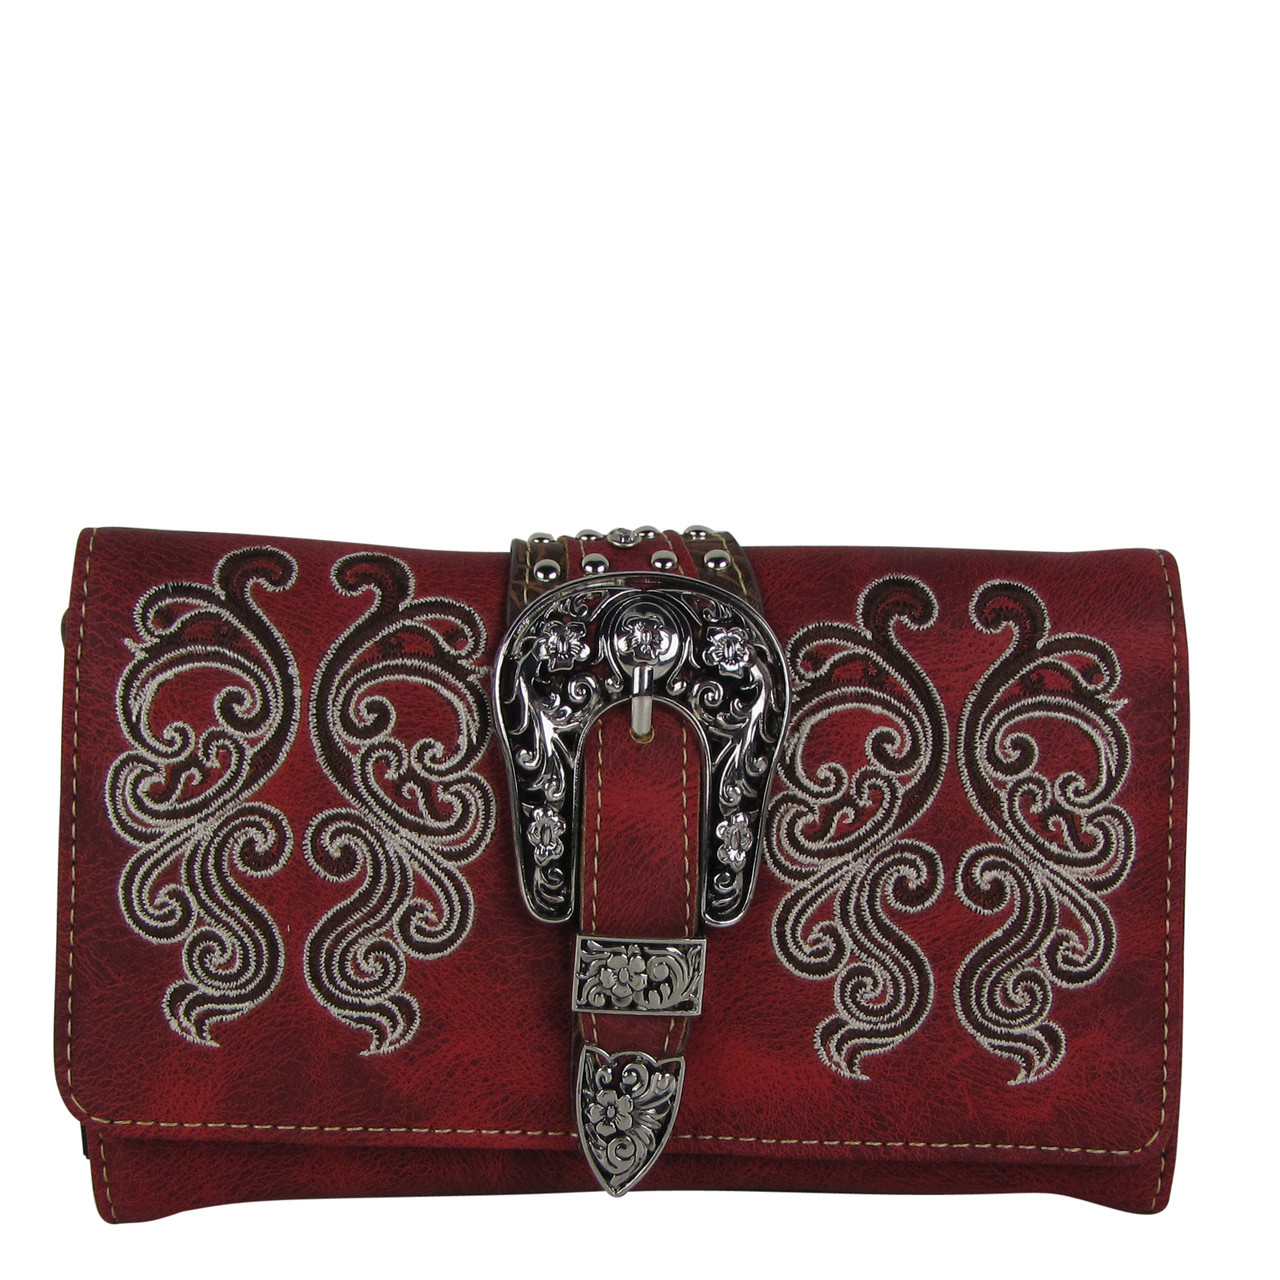 RED WESTERN BUCKLE LOOK CLUTCH TRIFOLD WALLET CW1-1277RED